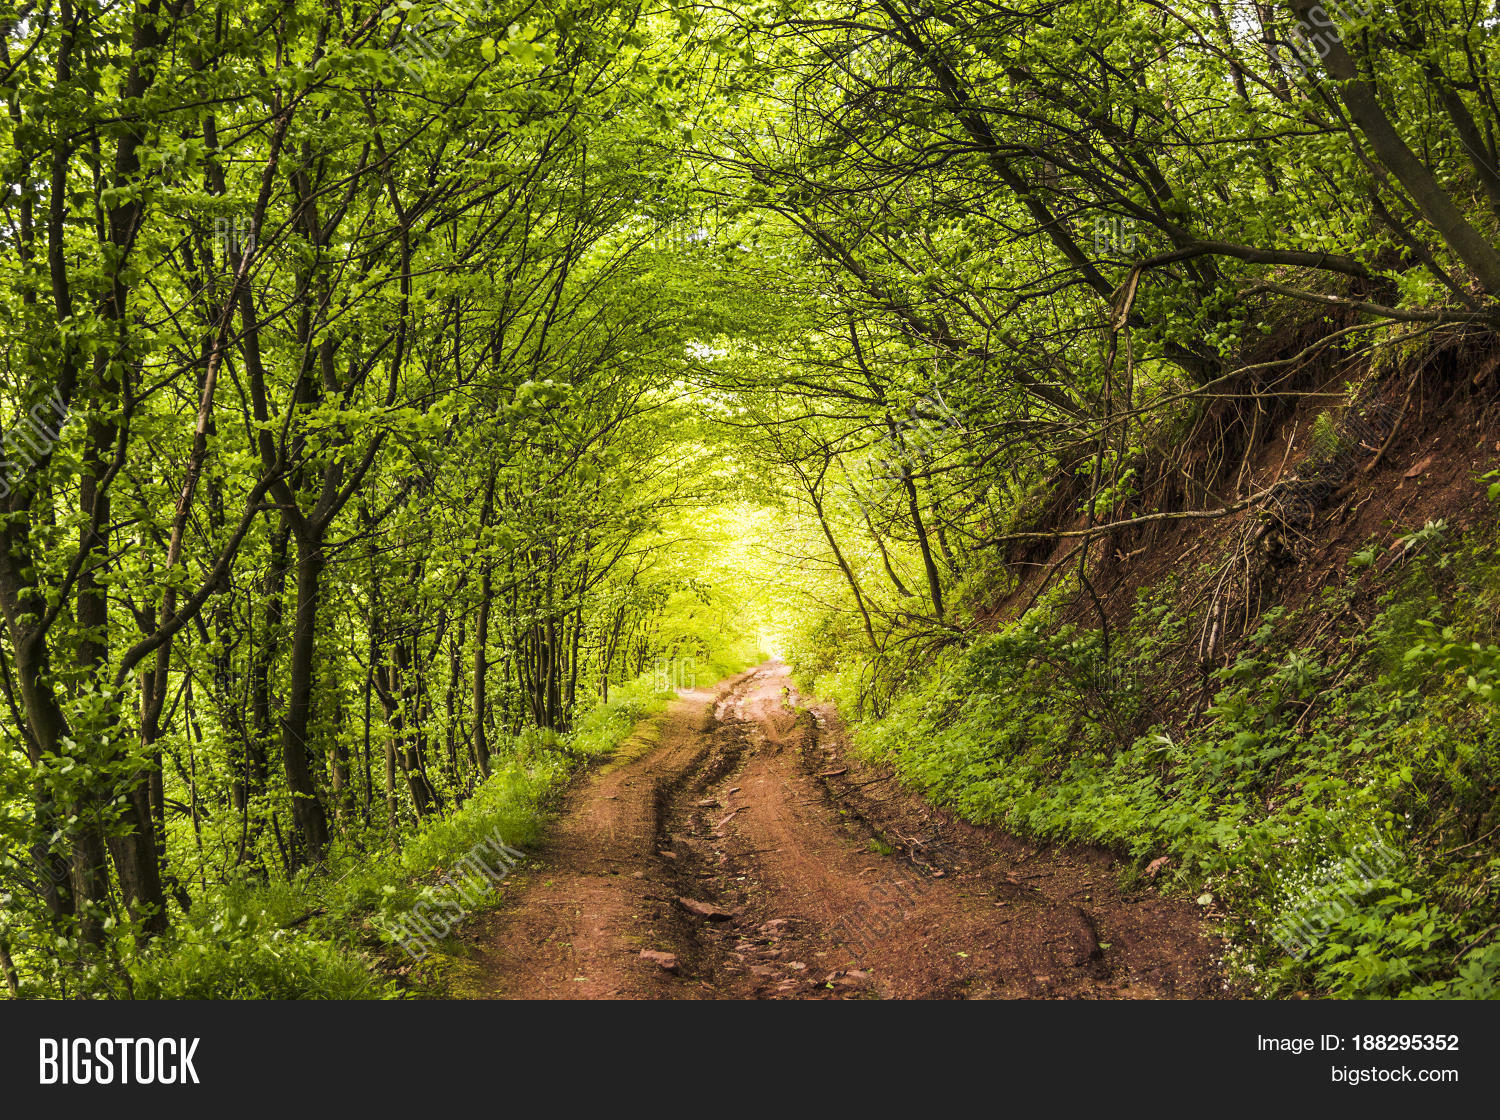 Natural Green Tunnel Road Forest Image & Photo